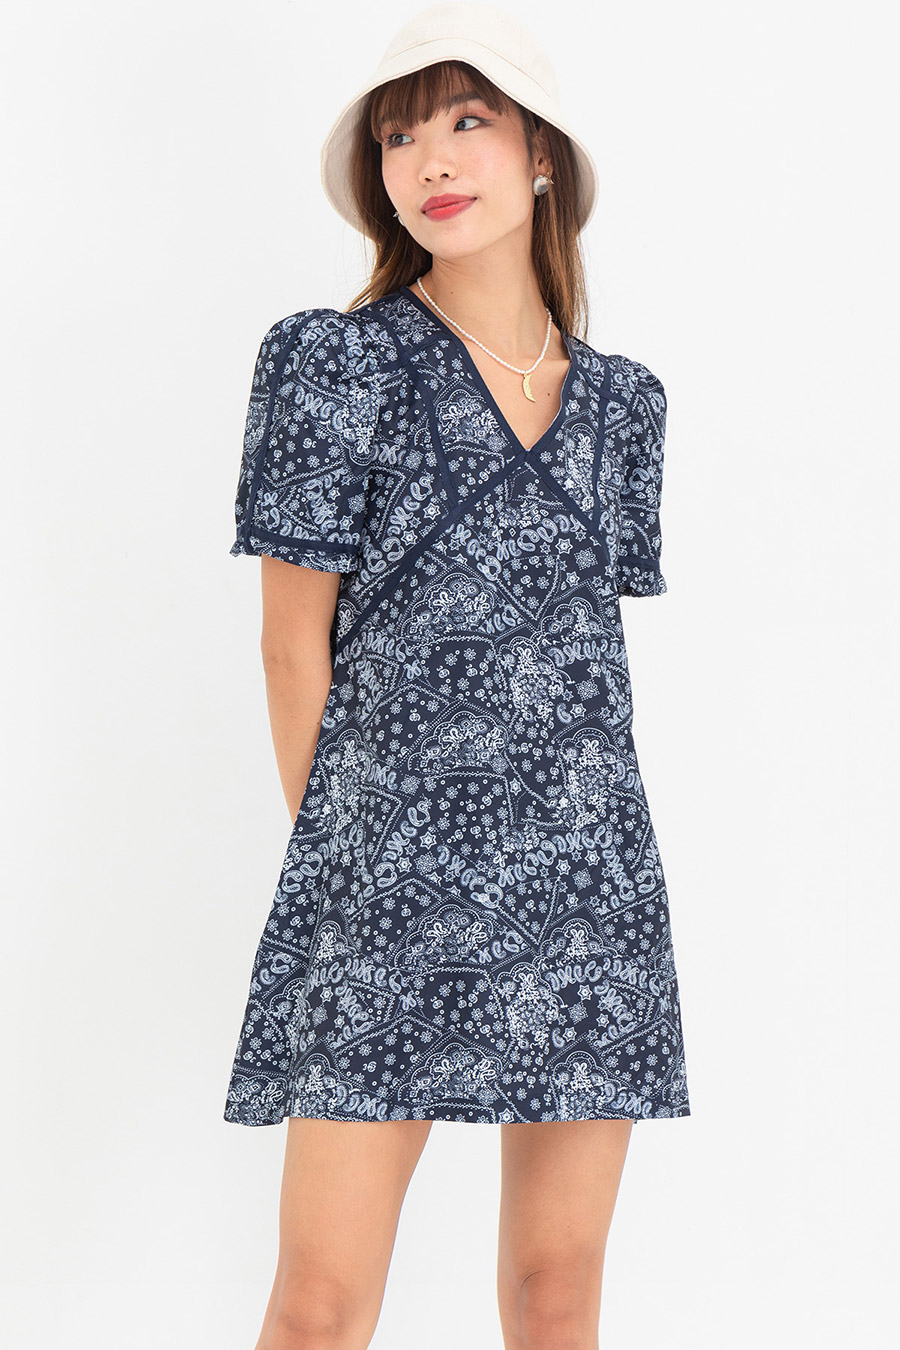 *BO* KEIR DRESS - NAVY PAISLEY